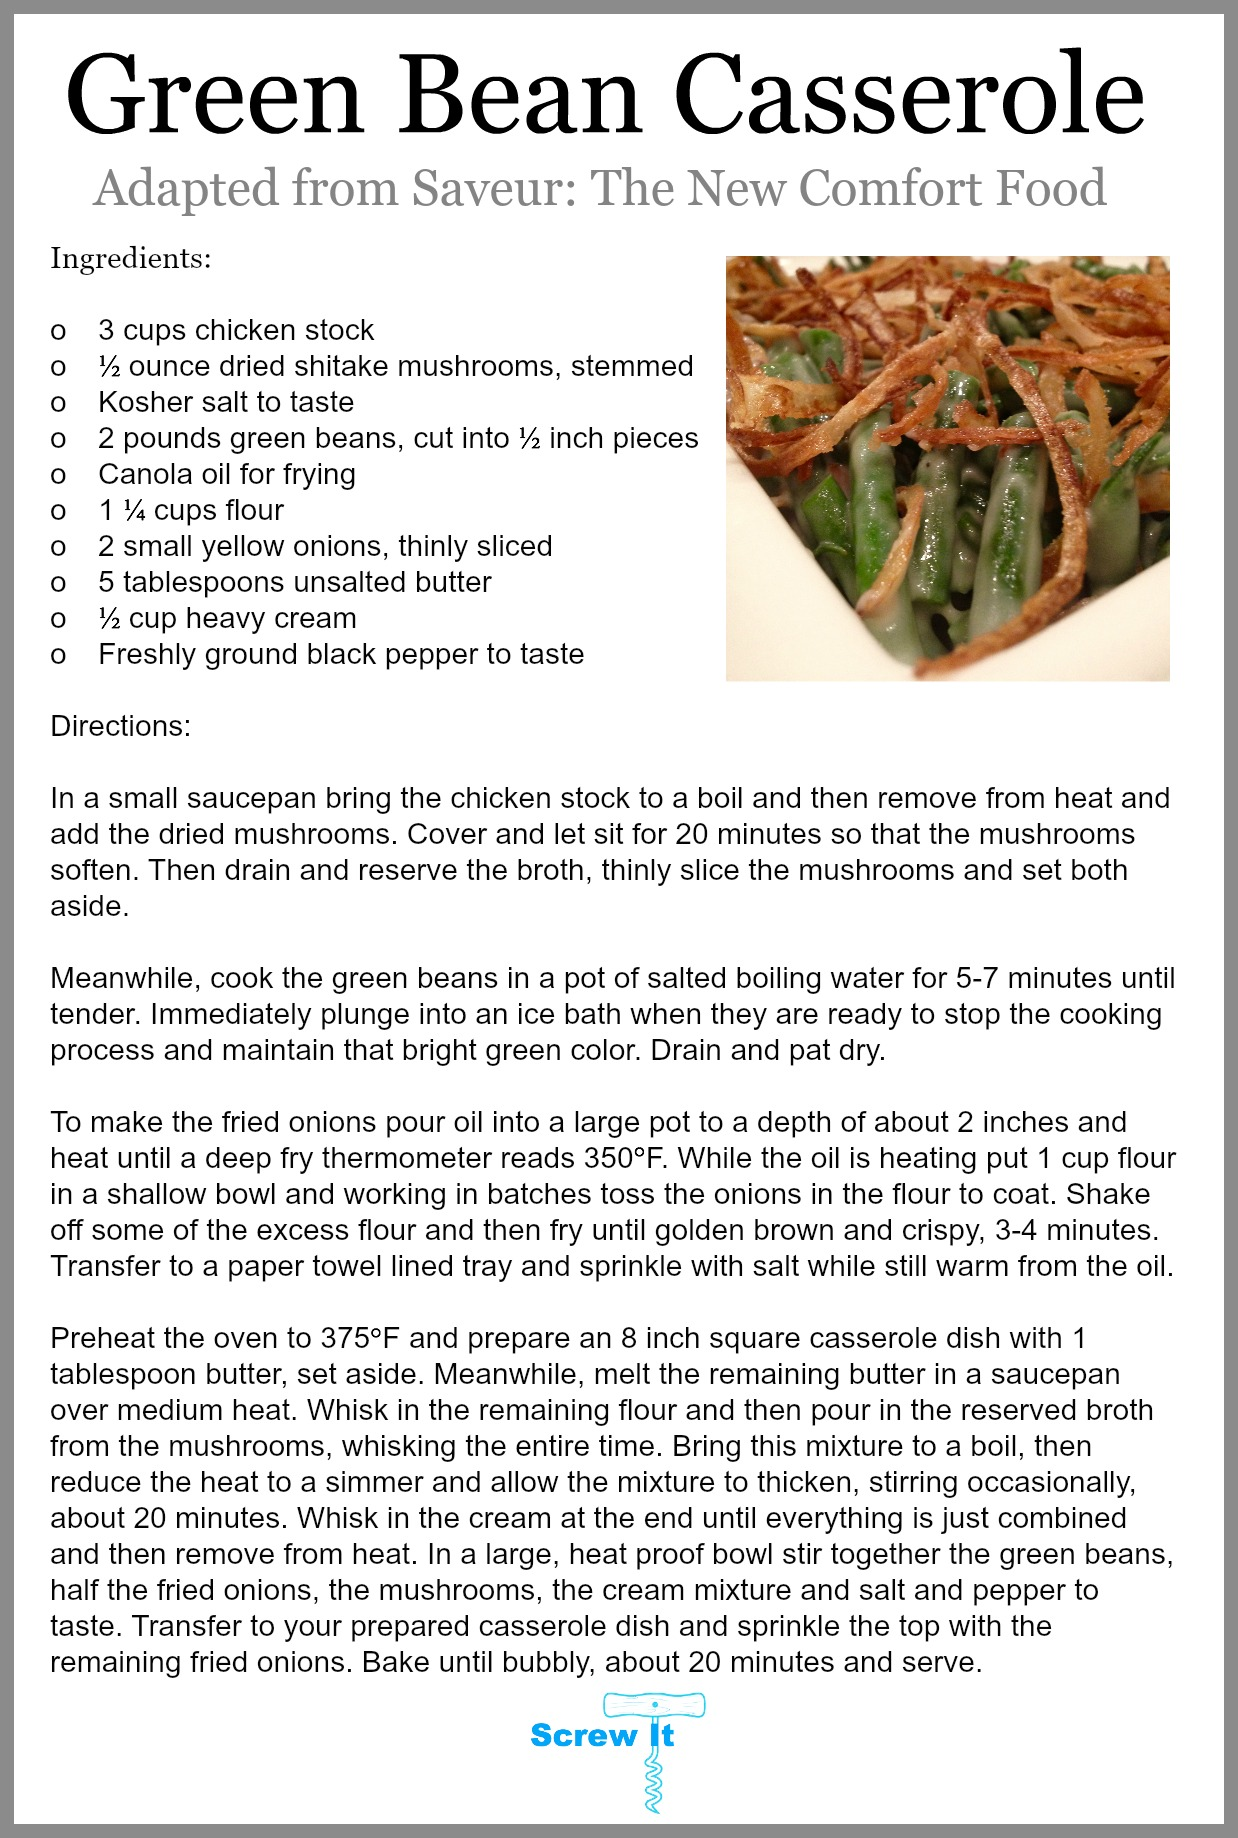 Green Bean Casserole Recipe 2